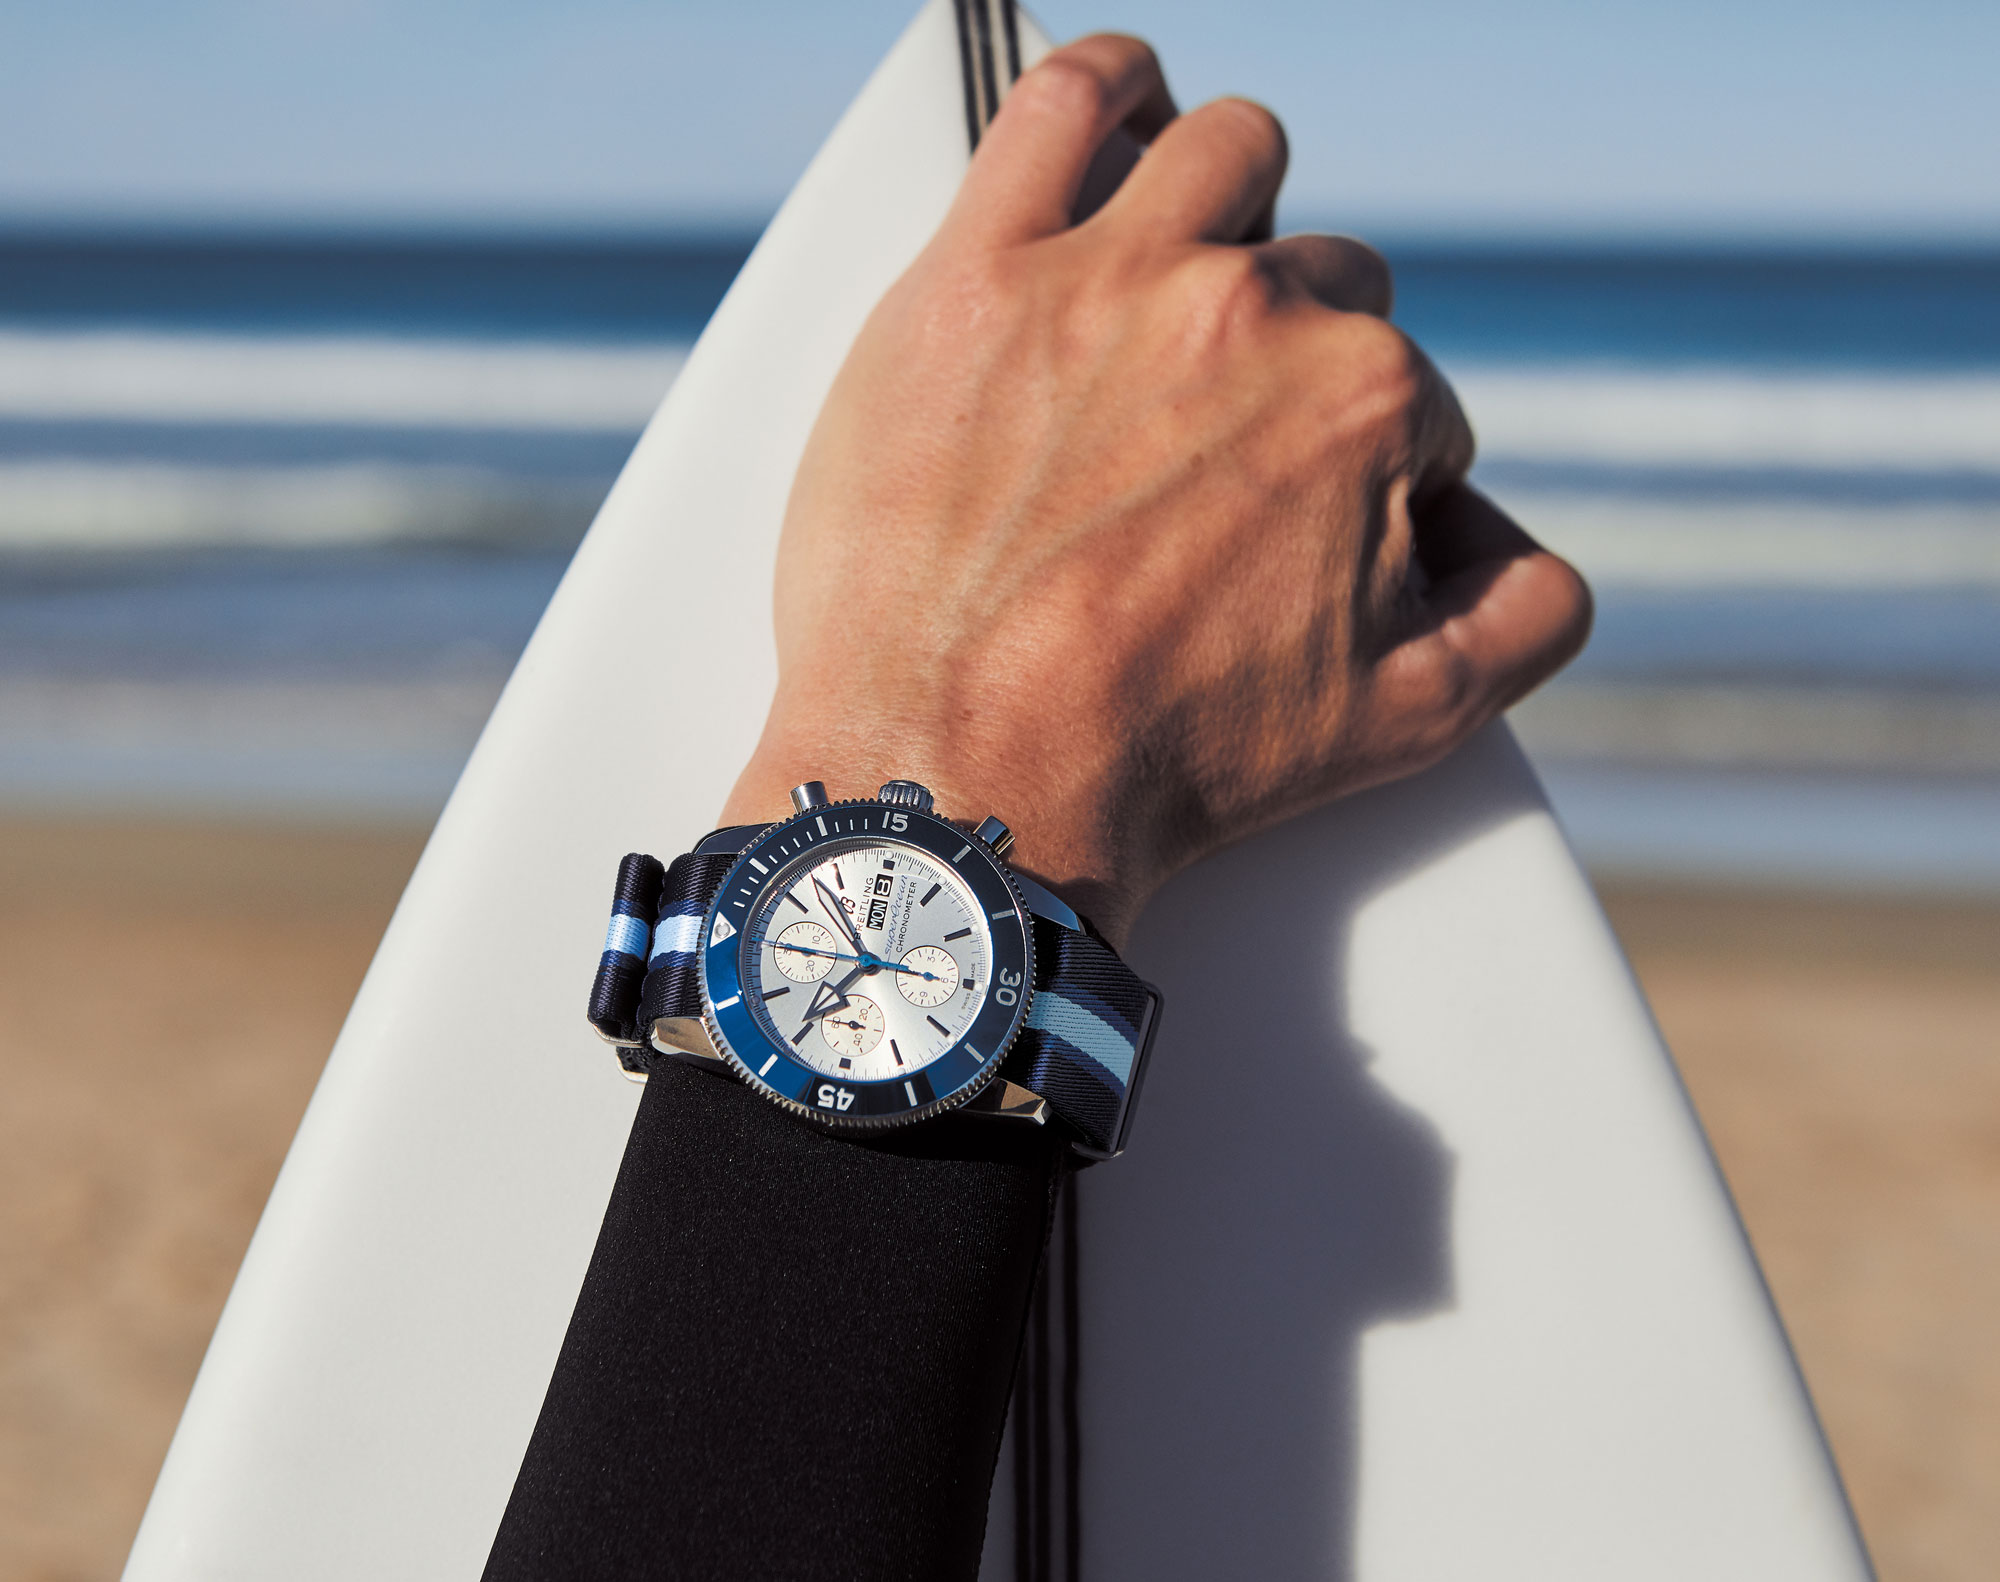 The Superocean Heritage Ocean Conservancy Limited Edition